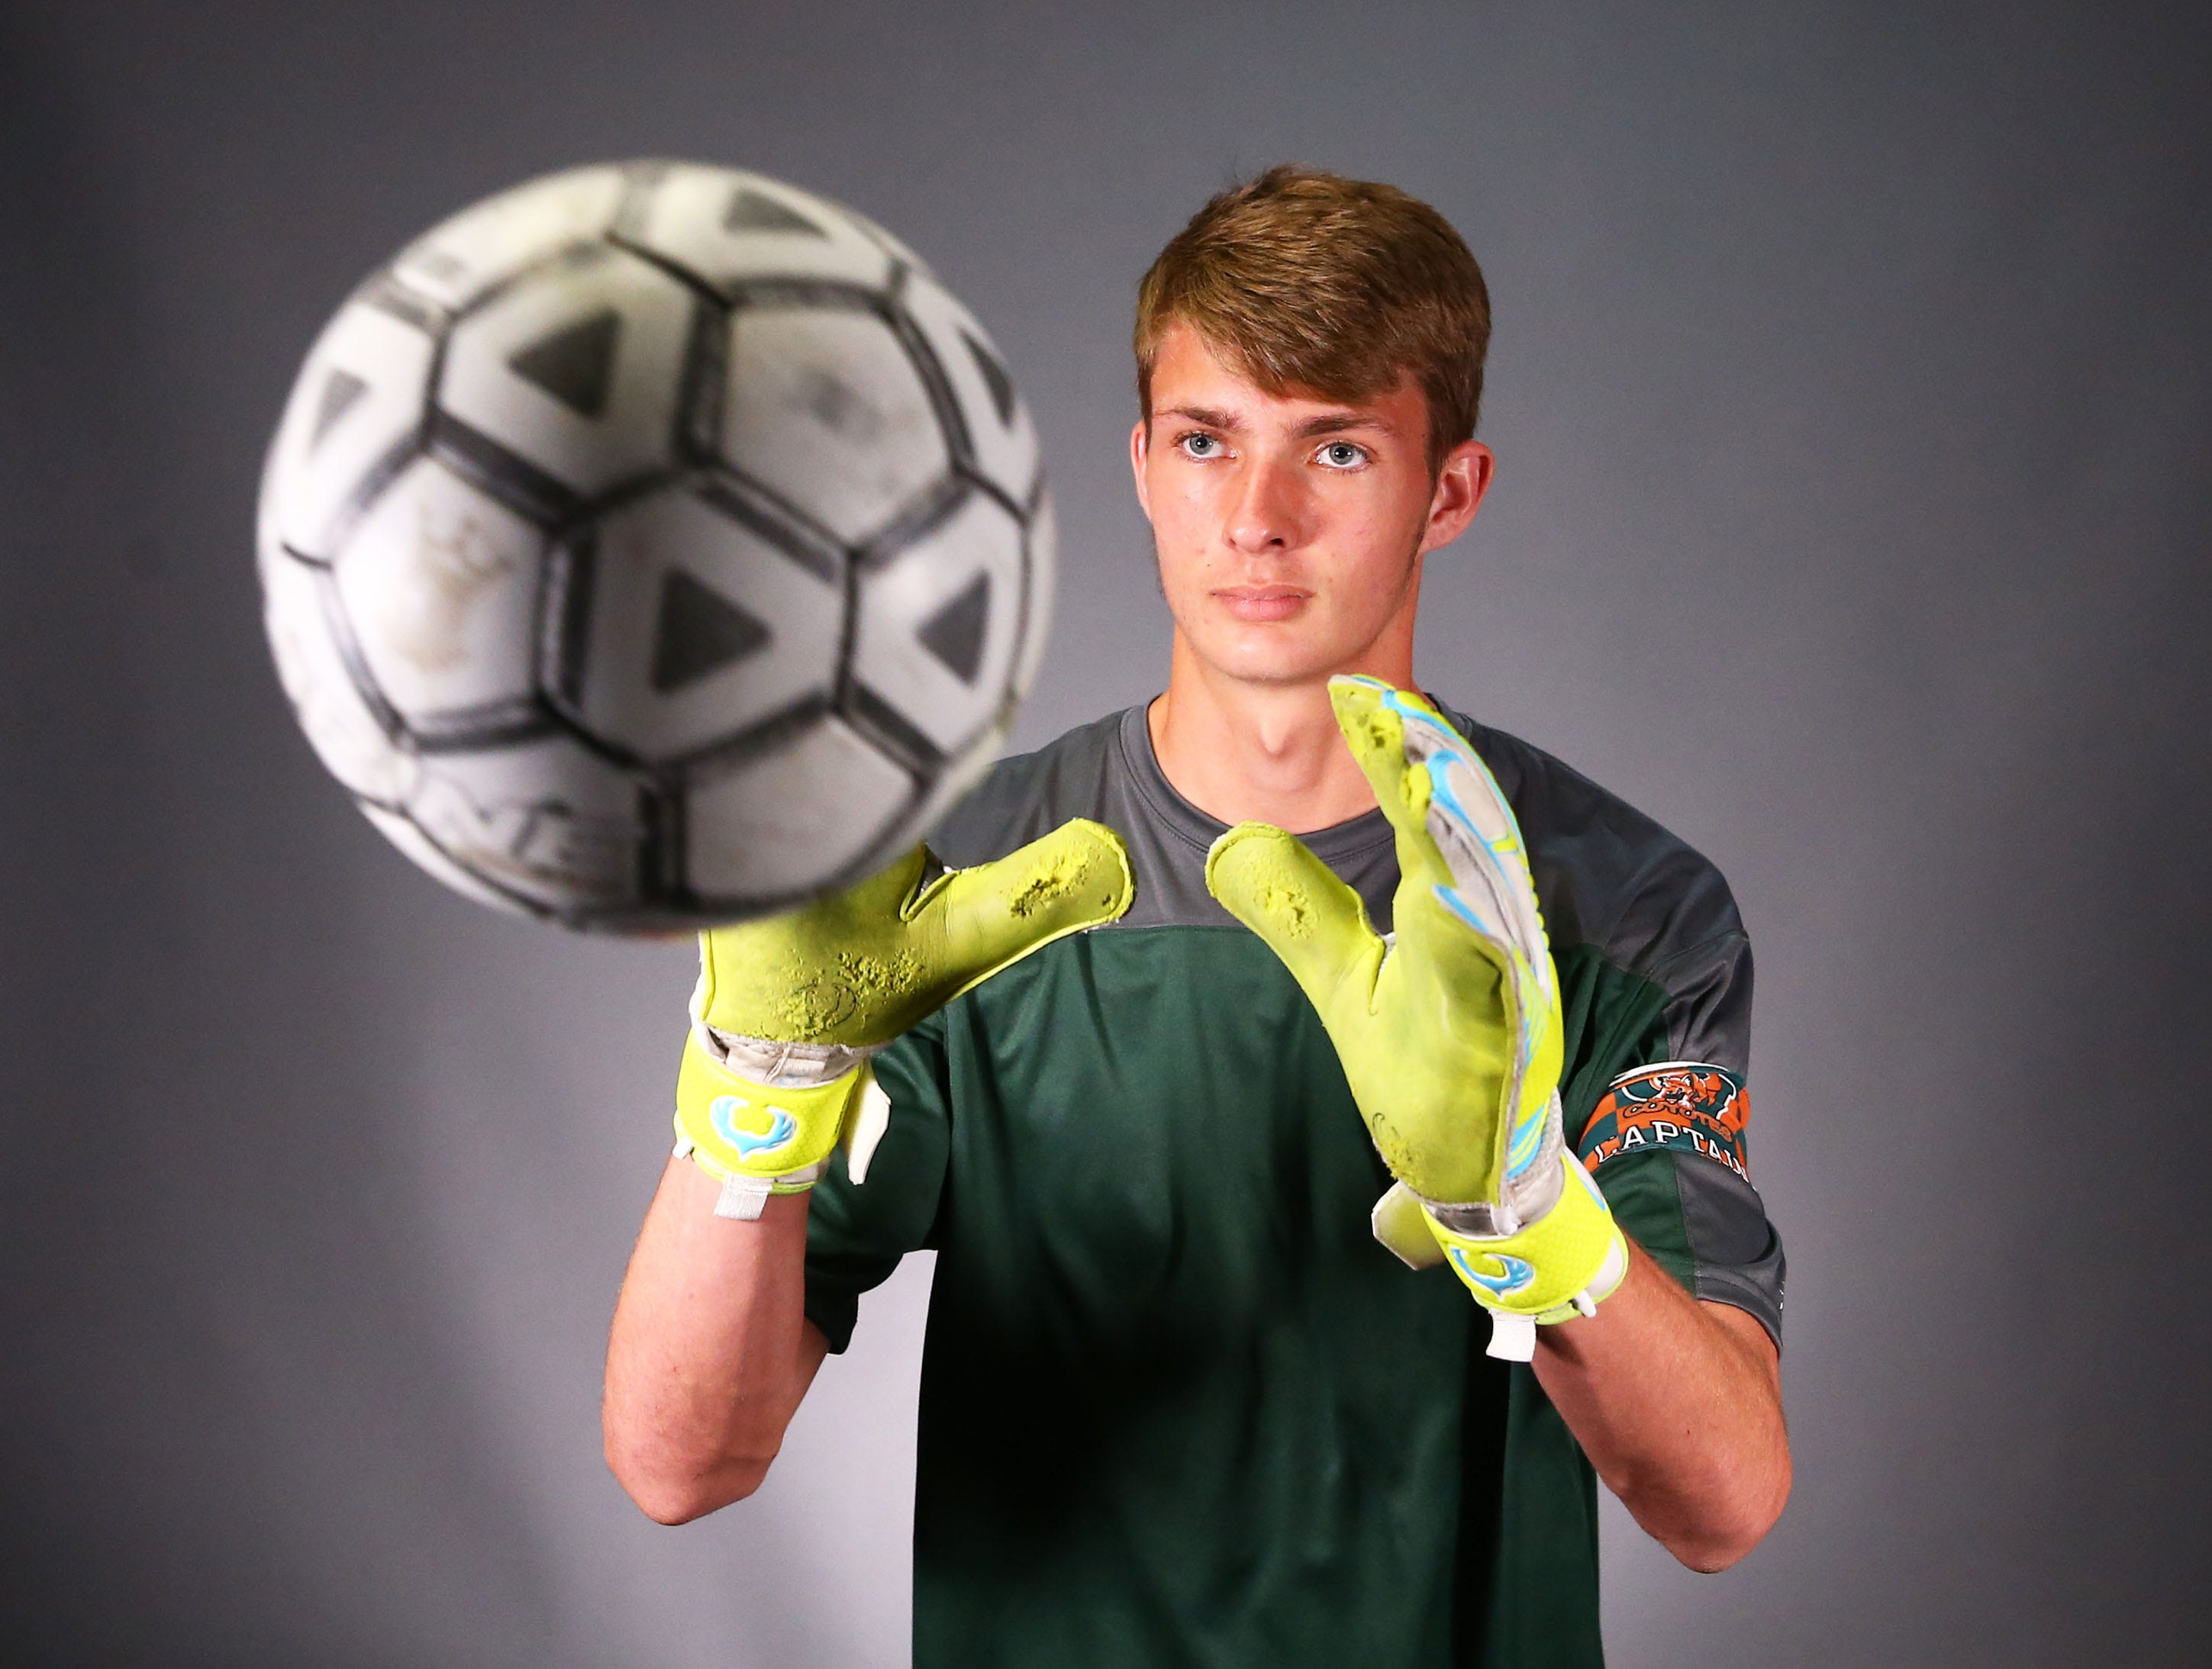 Boys Soccer Player of the Year nominees Jacob Zimmerman of Gilbert Campo Verde #azcsportsawards